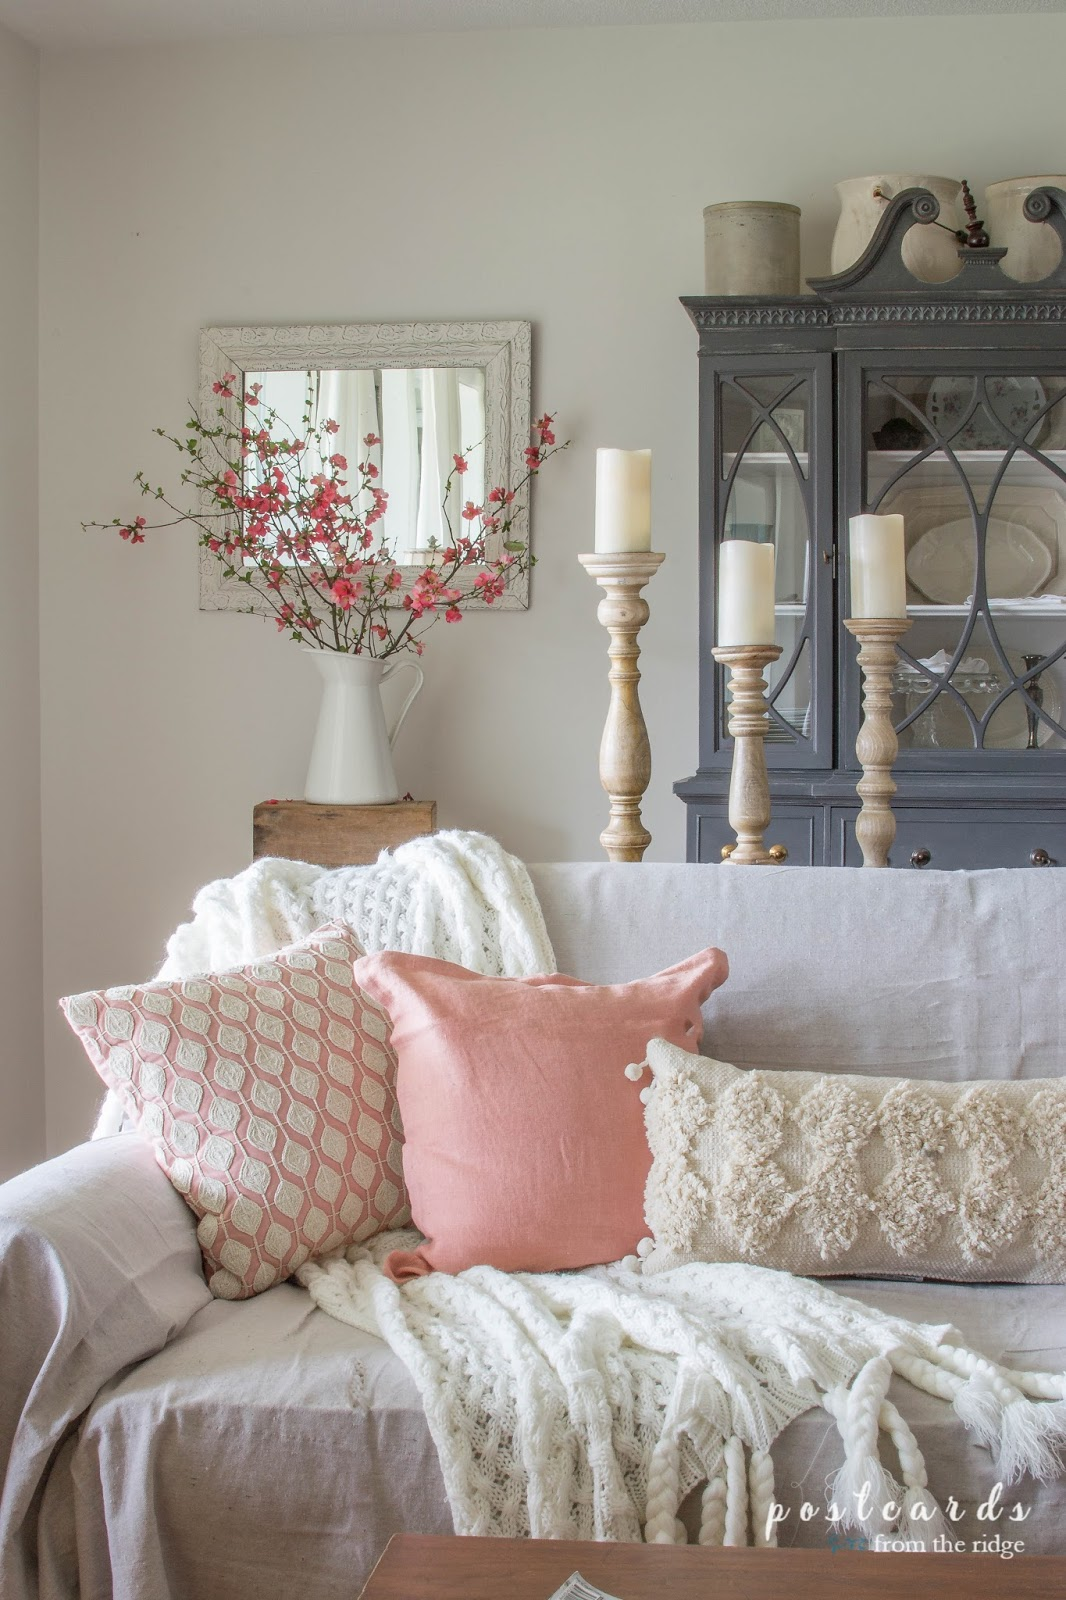 Blush and bashful spring accents in the living room postcards from the ridge White home design ideas